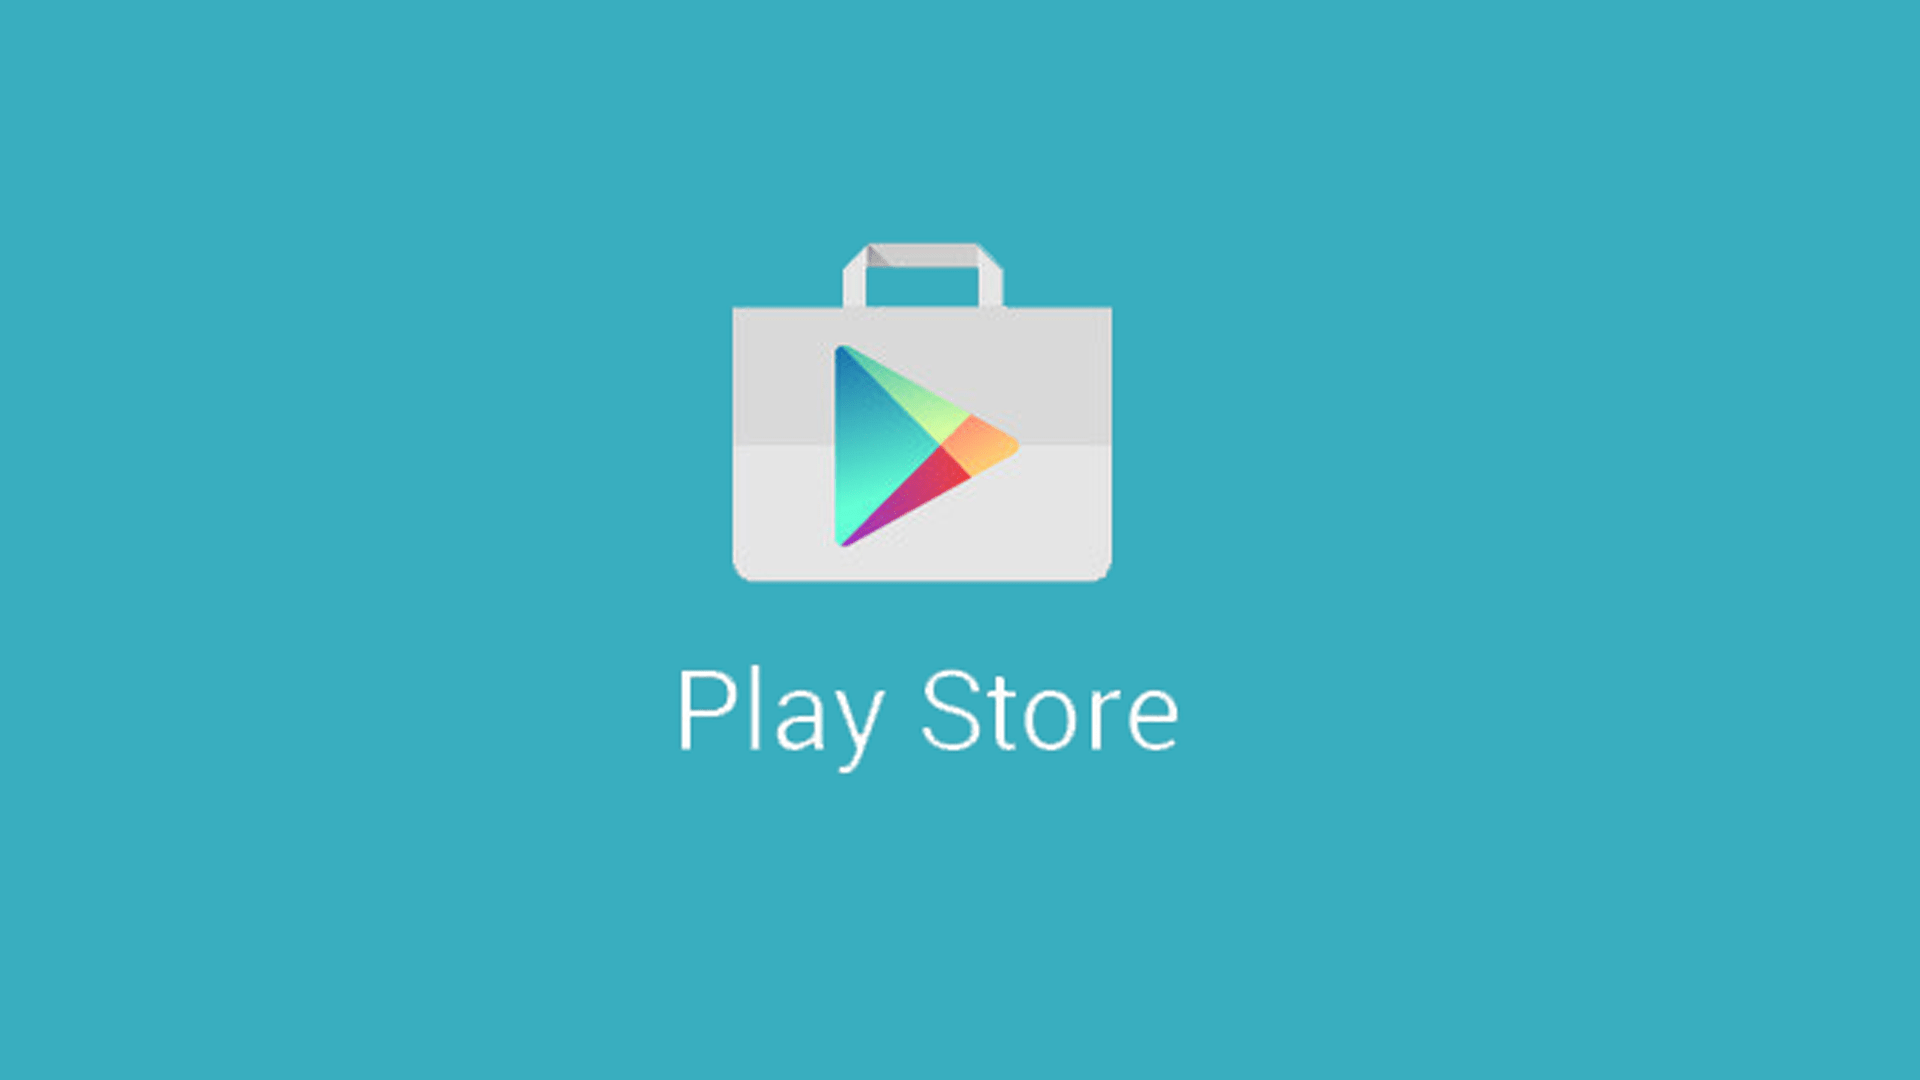 Tips for android developers for successfully publishing app on tips for android developers for successfully publishing app on google play store developers journal stopboris Choice Image